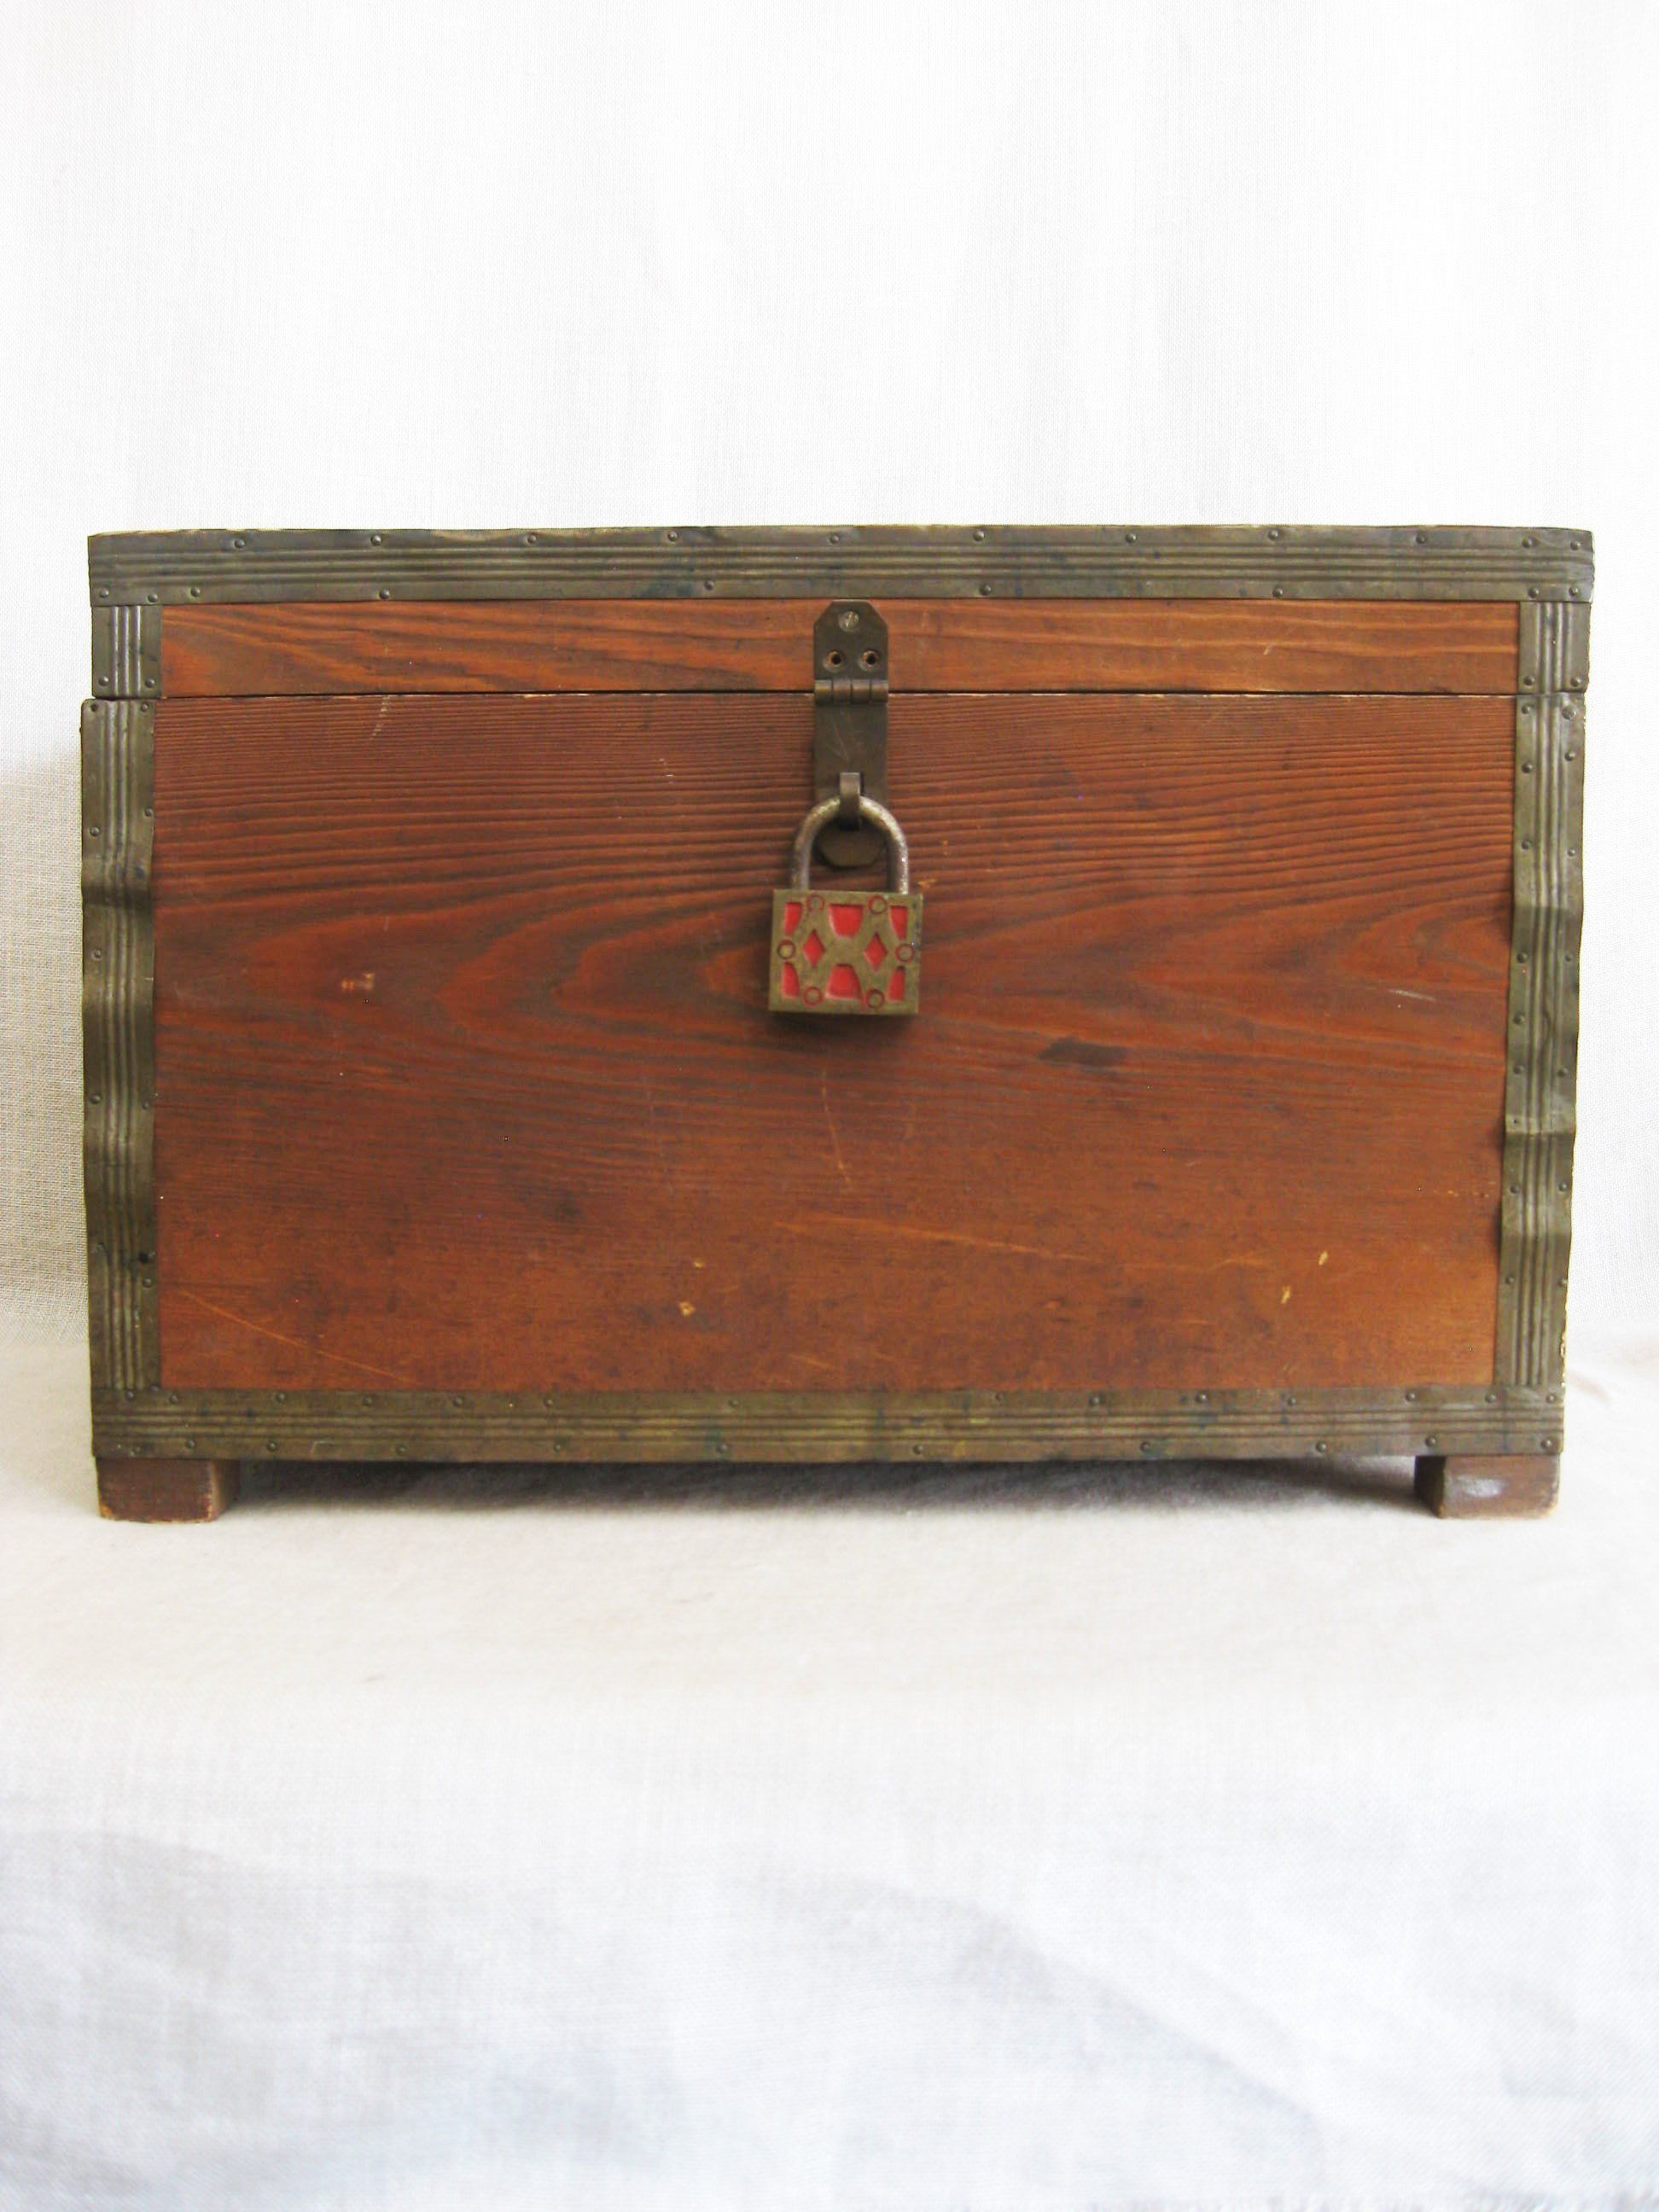 Vintage Handmade Folk Art Ballot Box Antique Pad Lock Small Primitive Chest Trunk Storage Organization W Wooden Boxes Old Wooden Boxes Rustic Cabin Decor